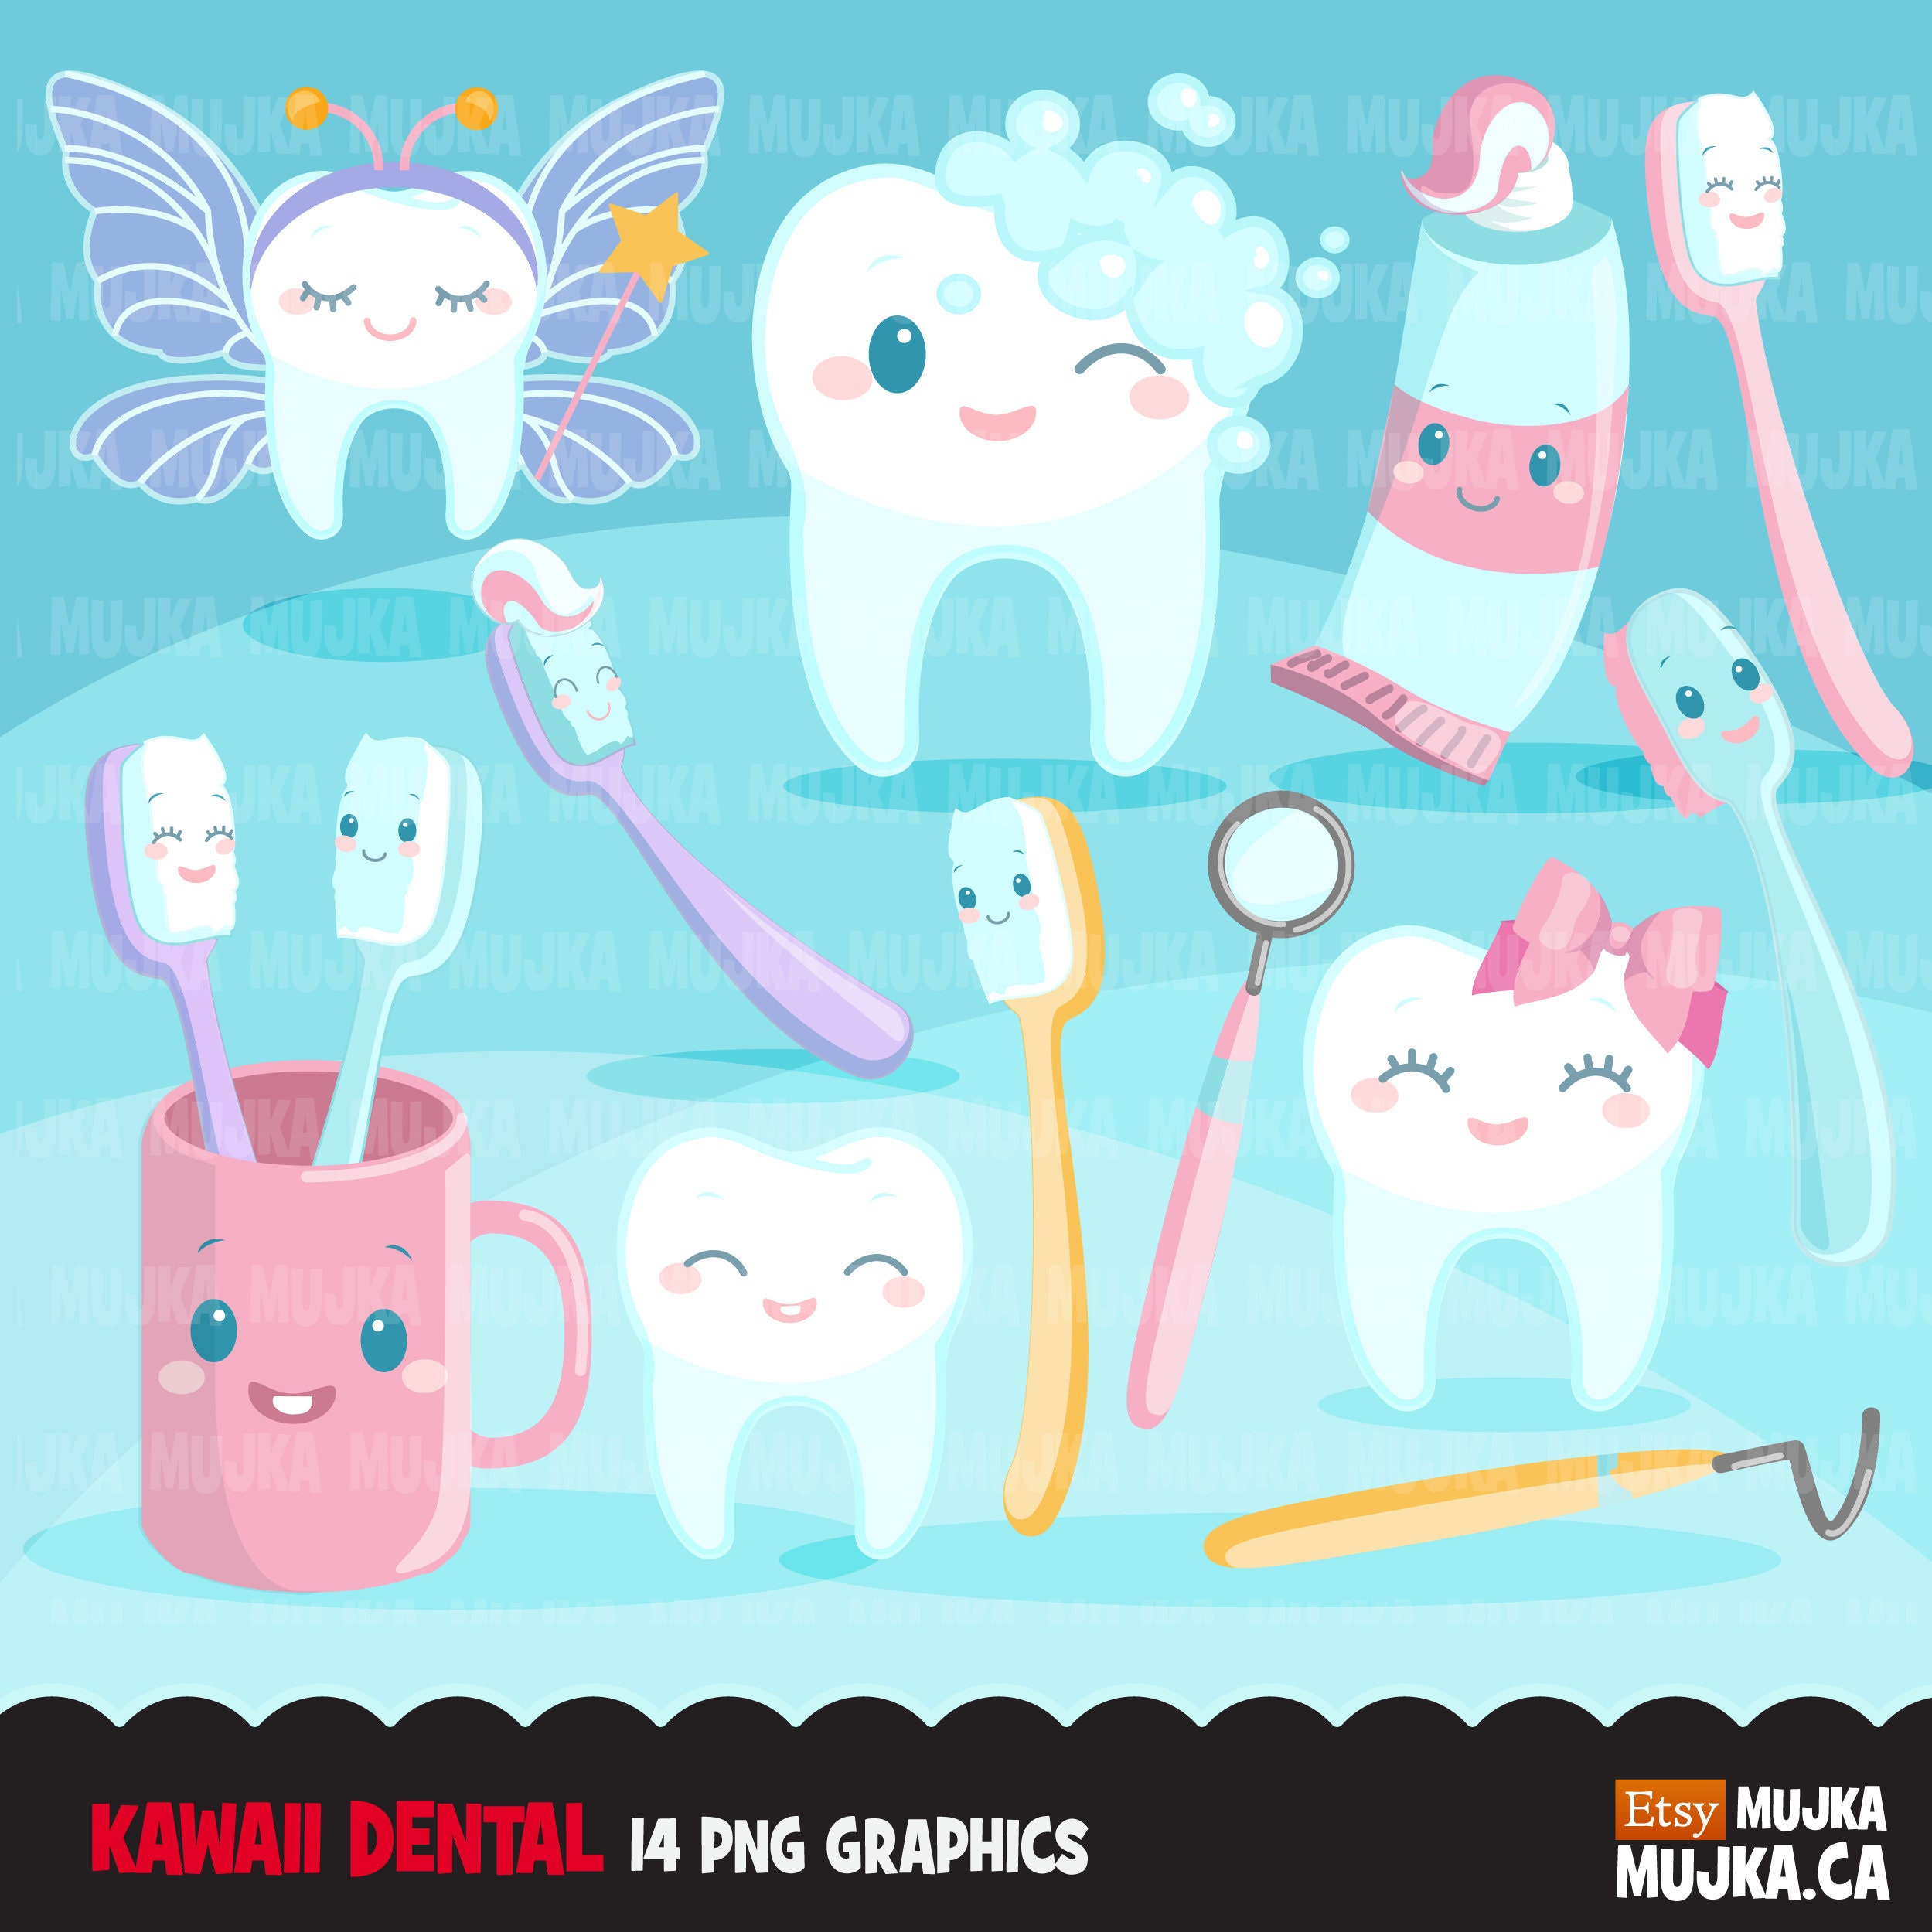 Toothbrush PNG Transparent Images | PNG All |Tooth Toothbrush Graphic